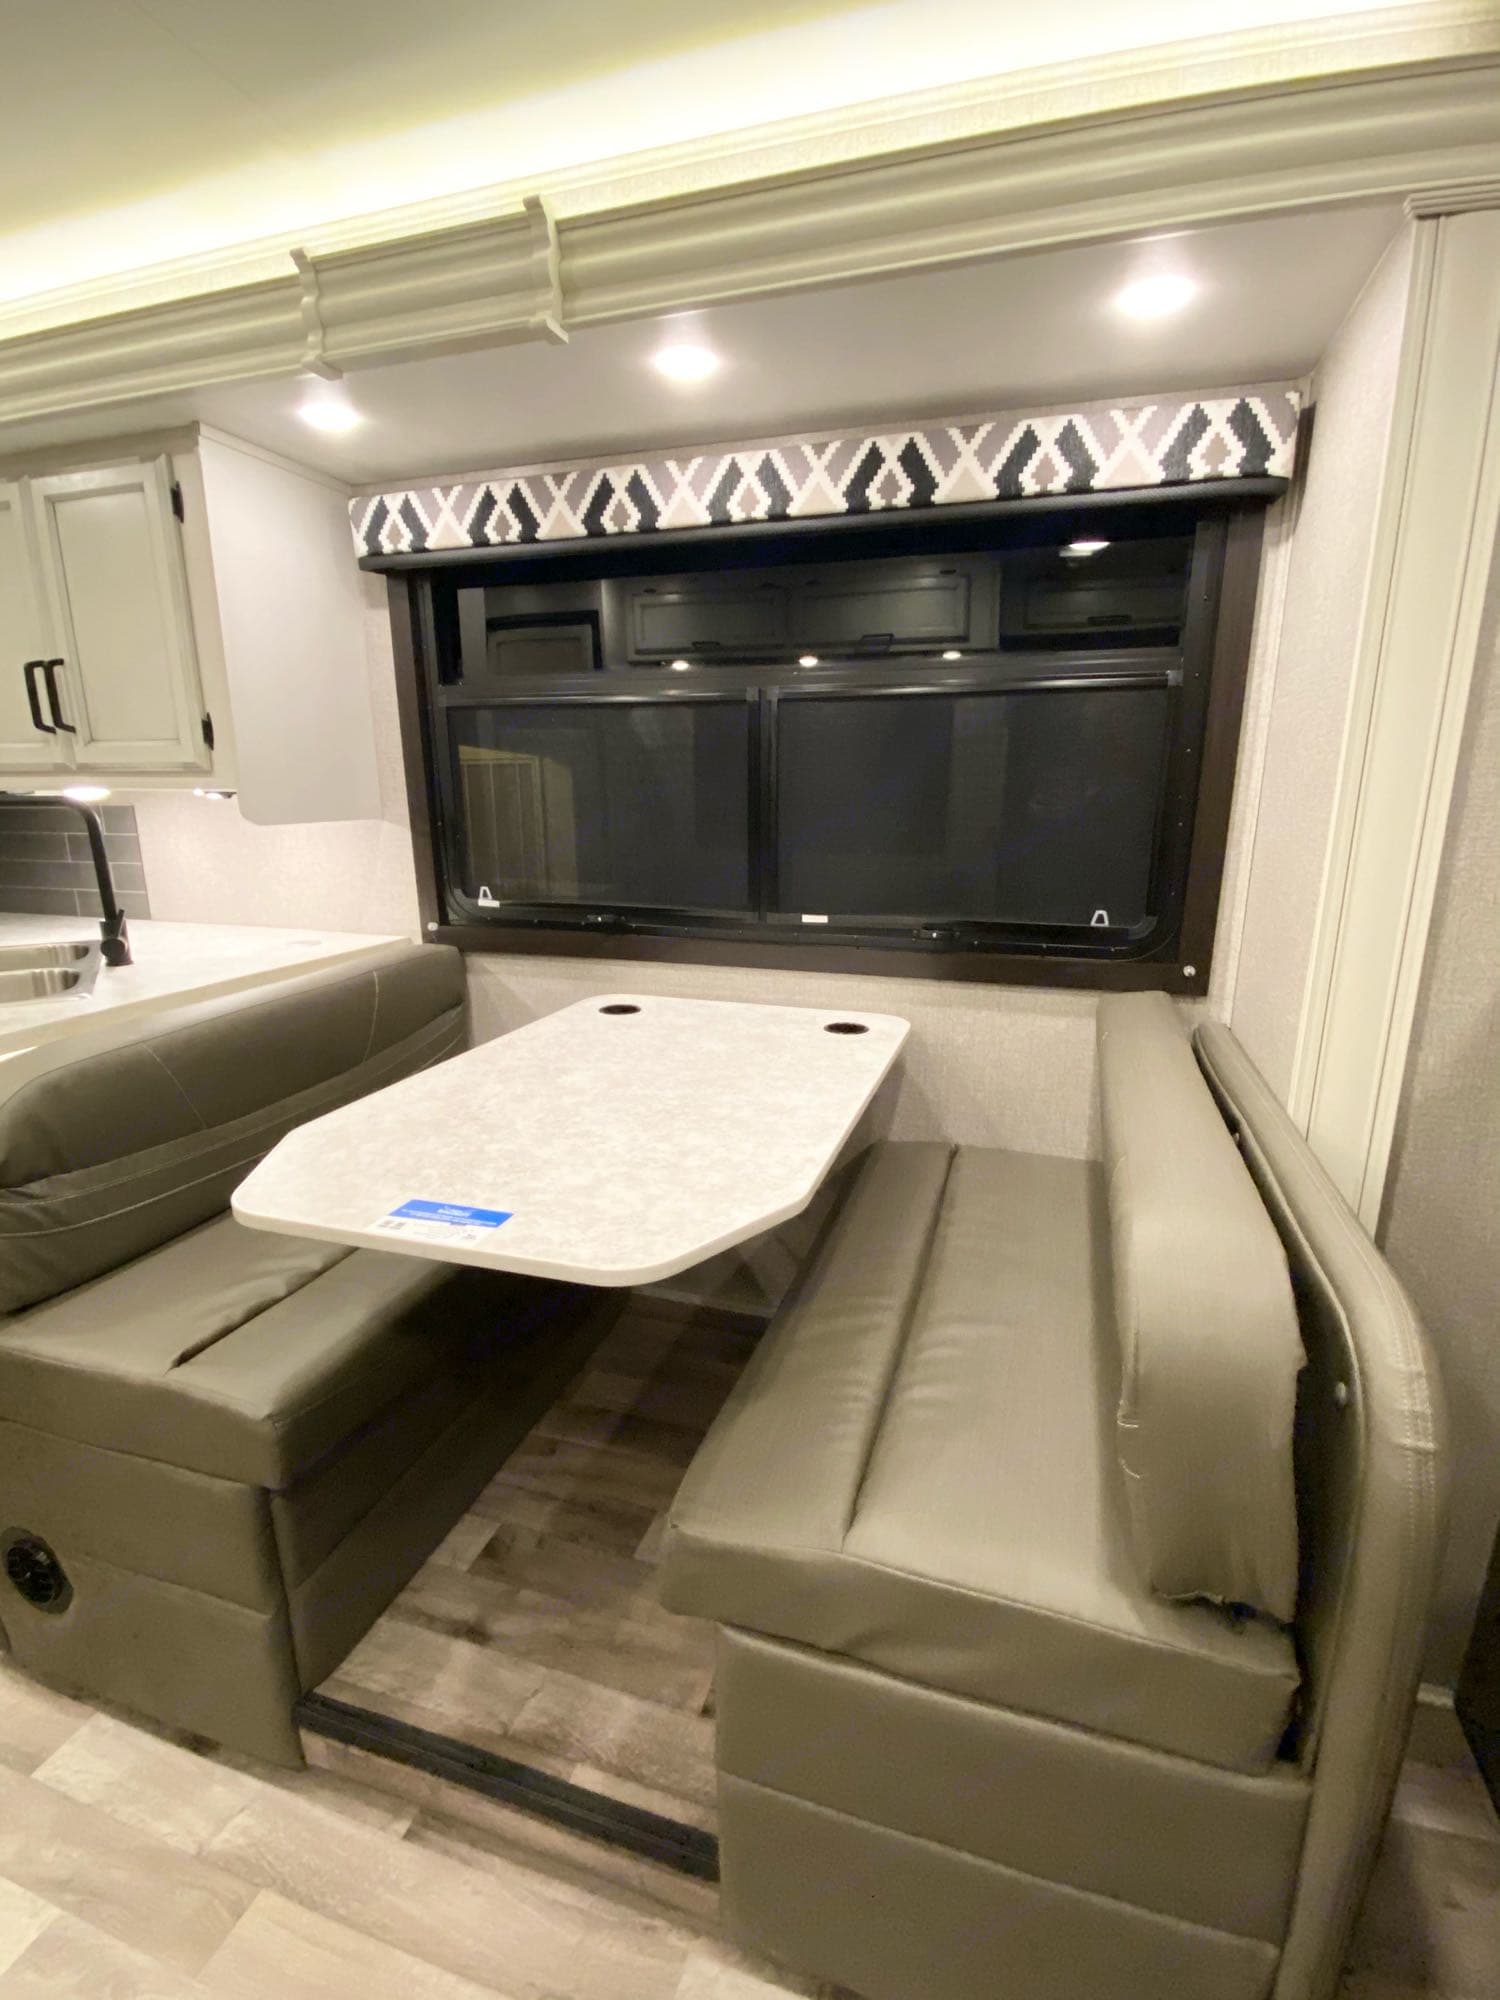 Dinette, with 4 seatbelts. Jayco Redhawk 2021